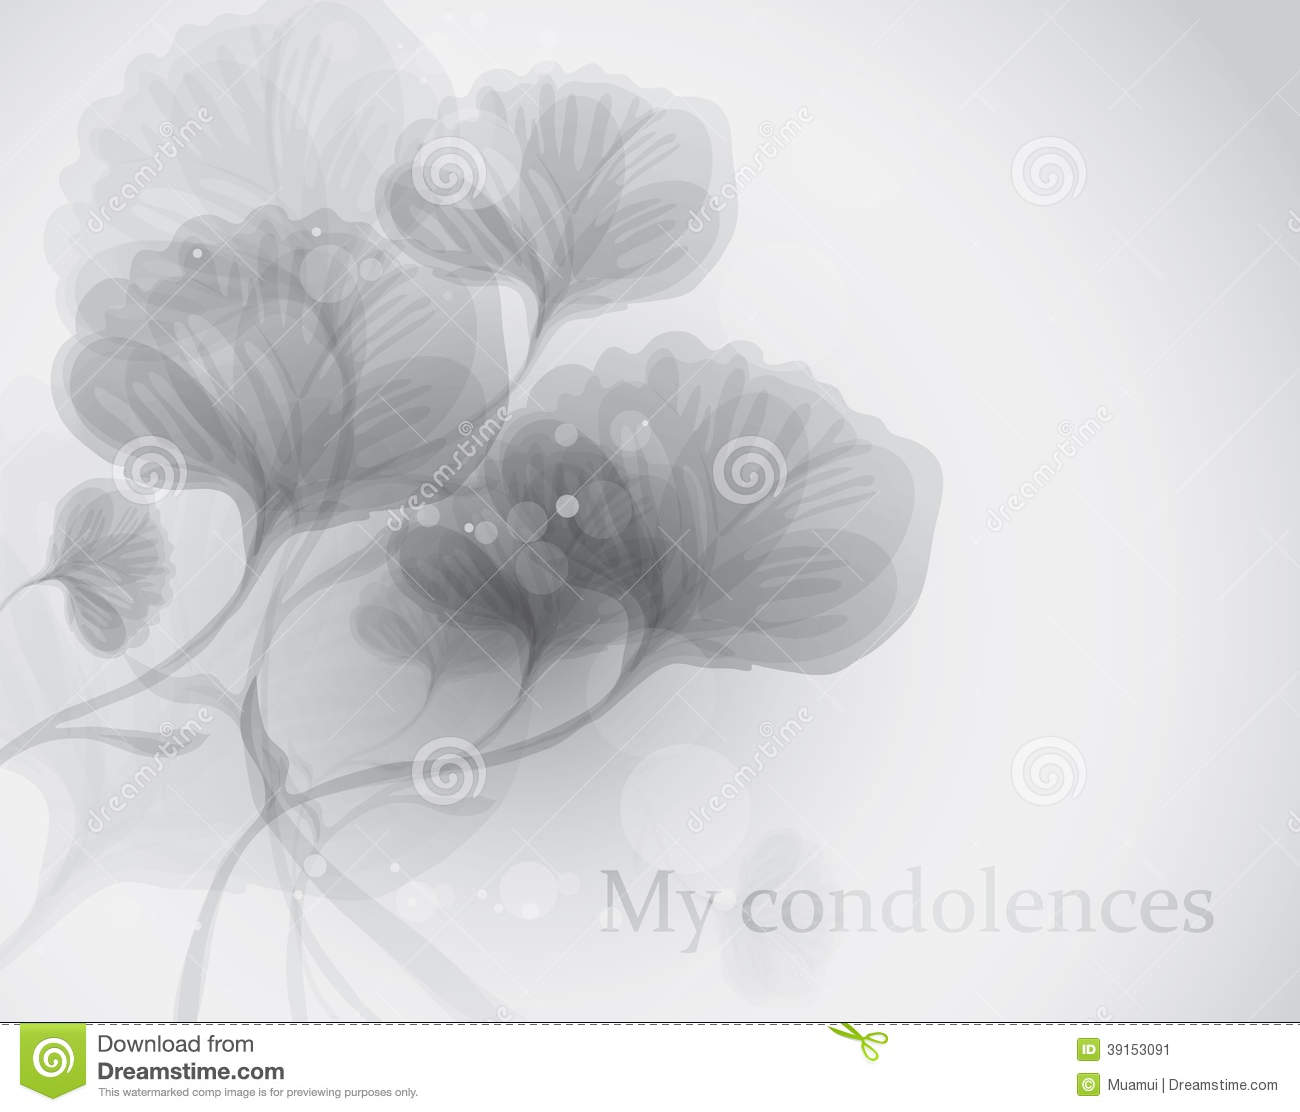 my condolences stock vector  image of blossom  evening